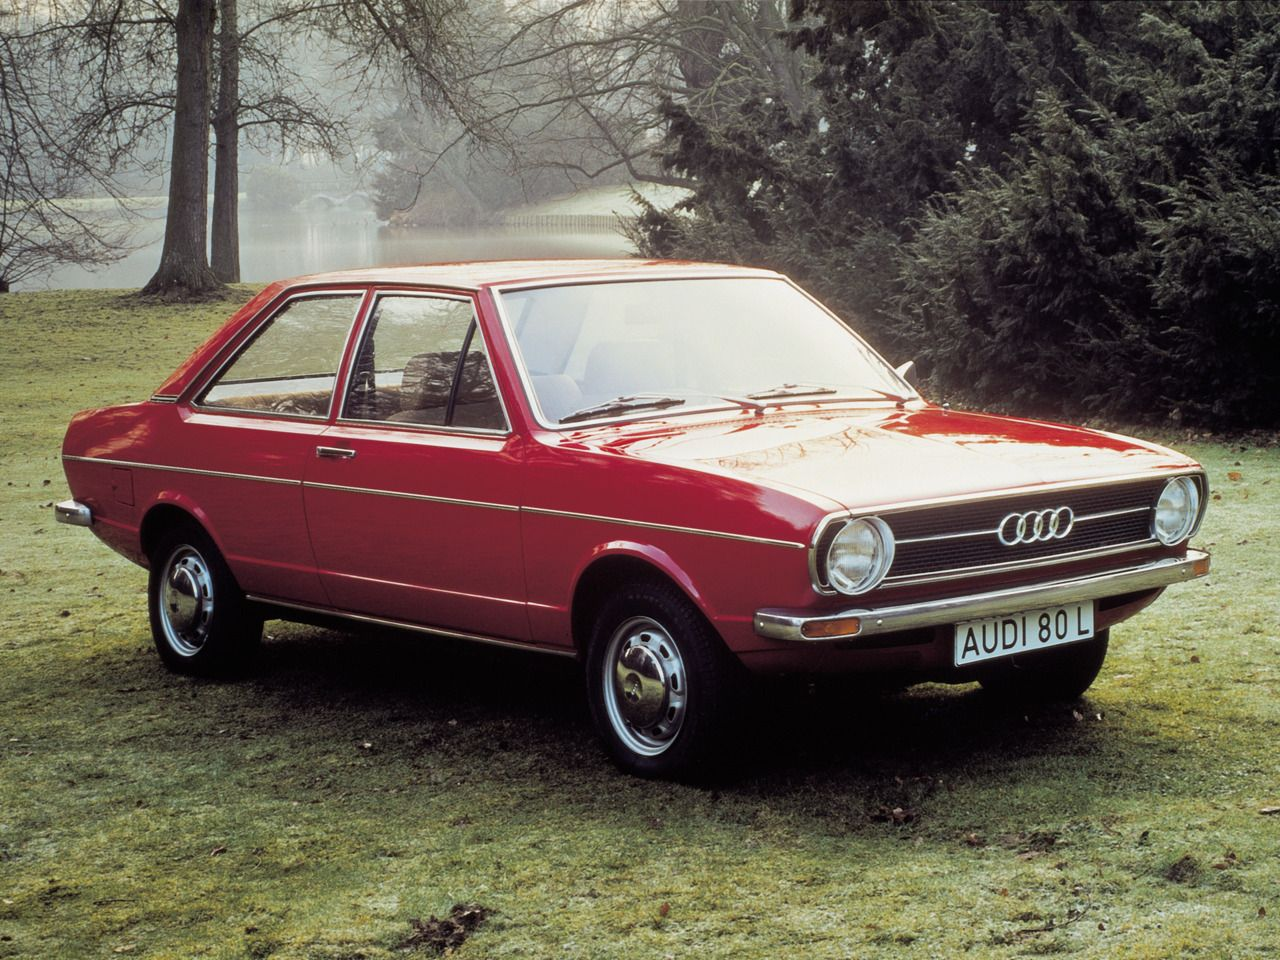 Audi 80 My First Front Wheel Drive Car It Was In A Poo Brown